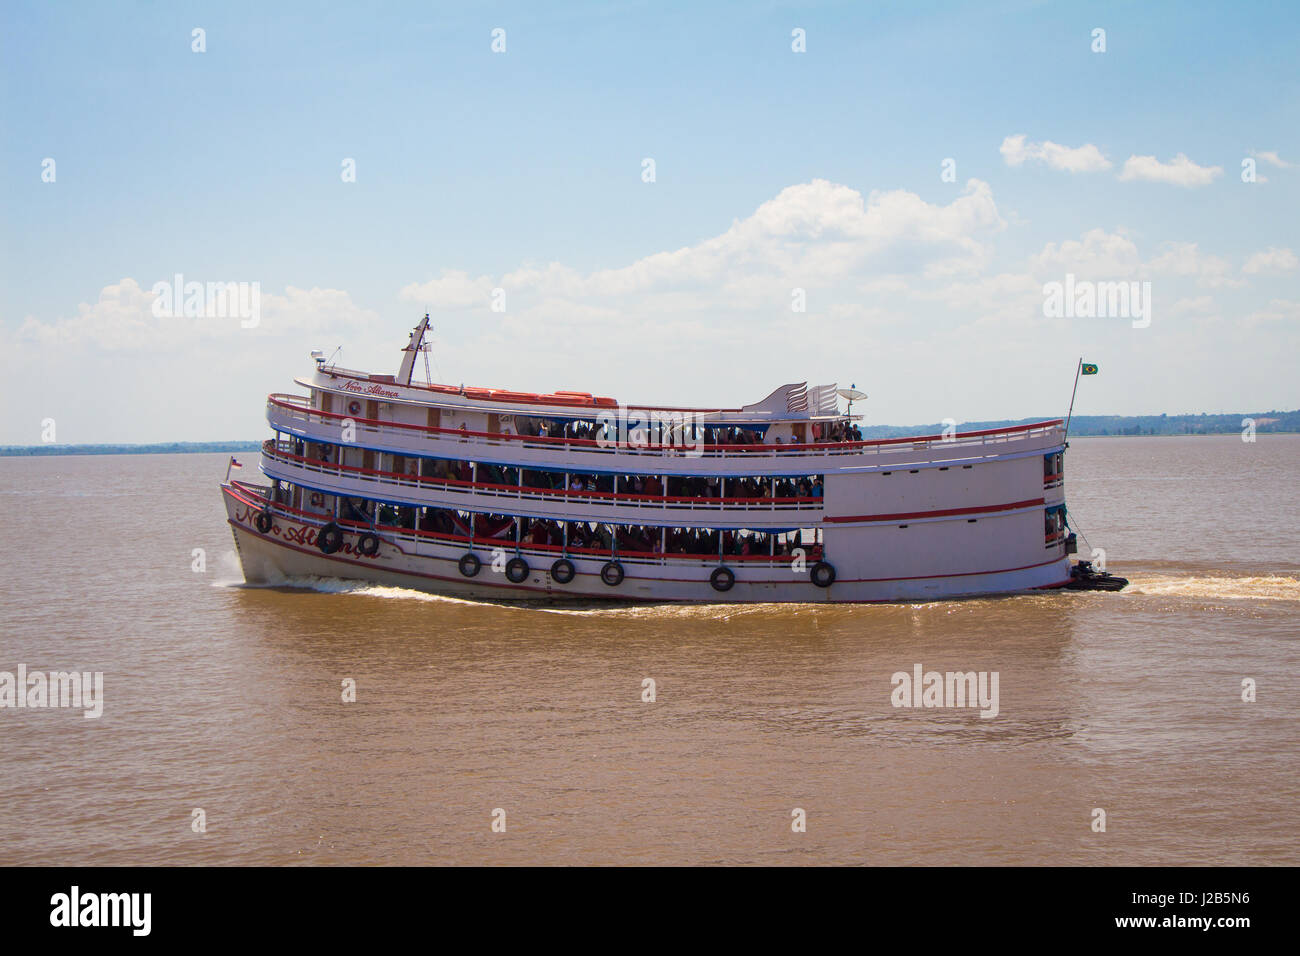 SANTAREM, PARA, BRAZIL - 3 OCTOBER 2015 - Typical transport boat from the Amazon region sails up the Amazon river - Stock Image